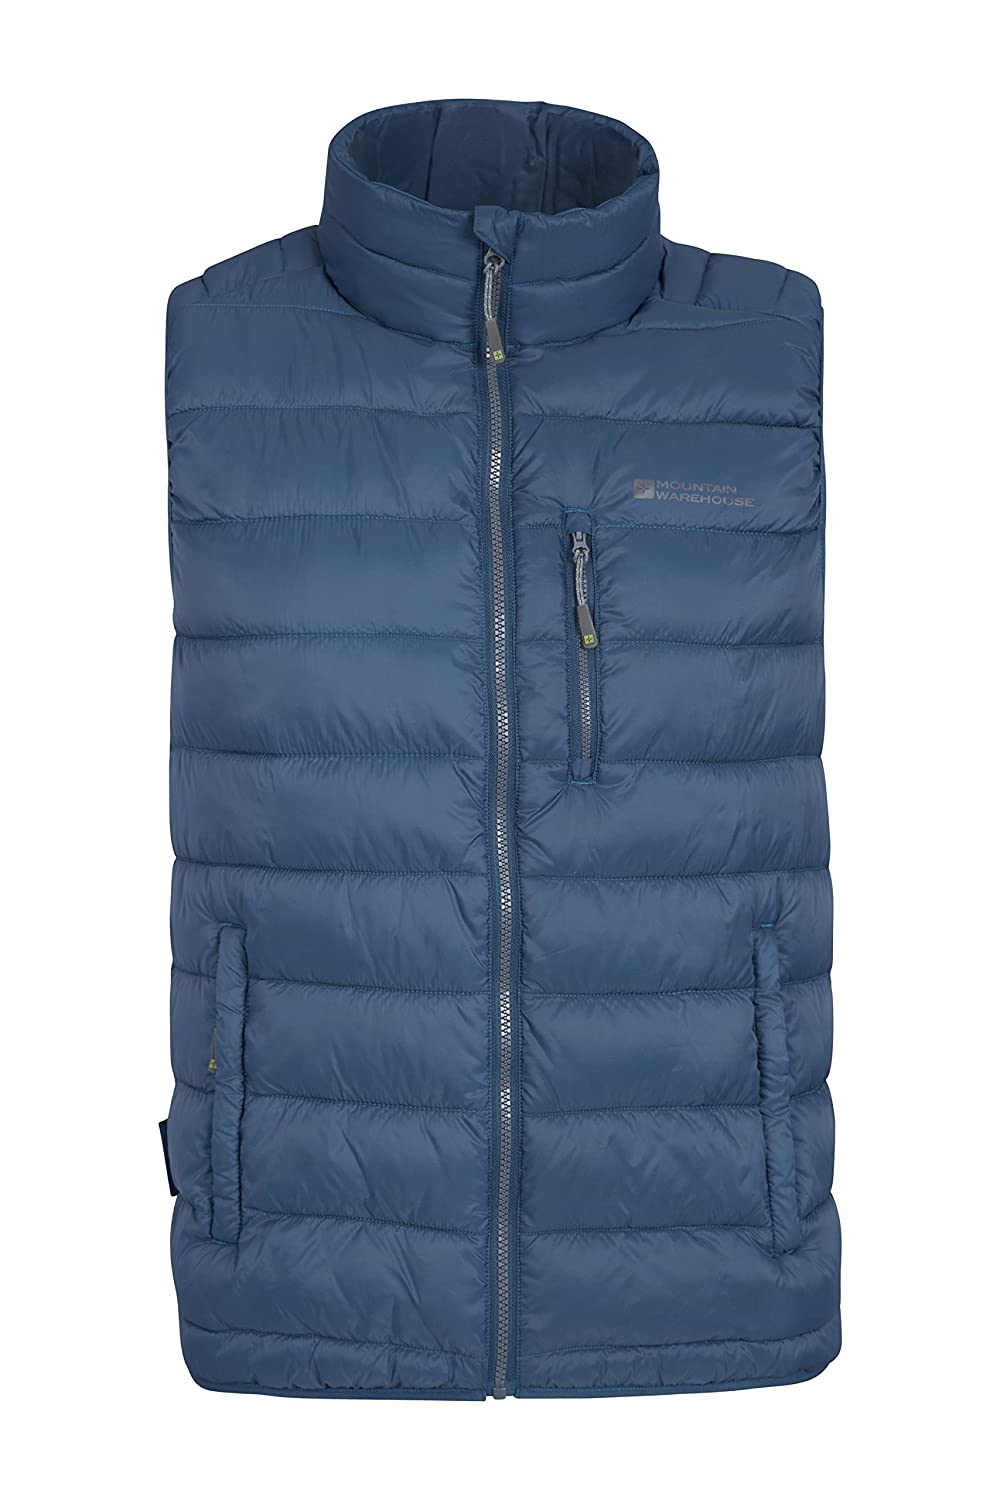 Mountain Warehouse Link Mens Padded Gilet - Summer Body Warmer Coat